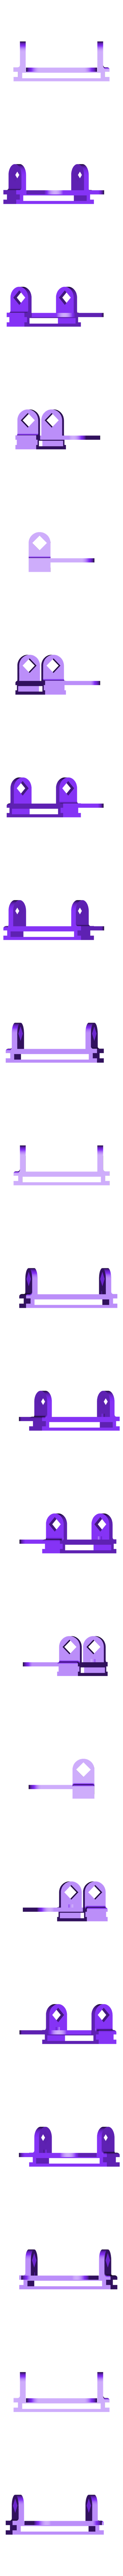 chassis_connector.stl Download STL file Drawing tool DLC for SMARS • 3D printable object, Tuitxy